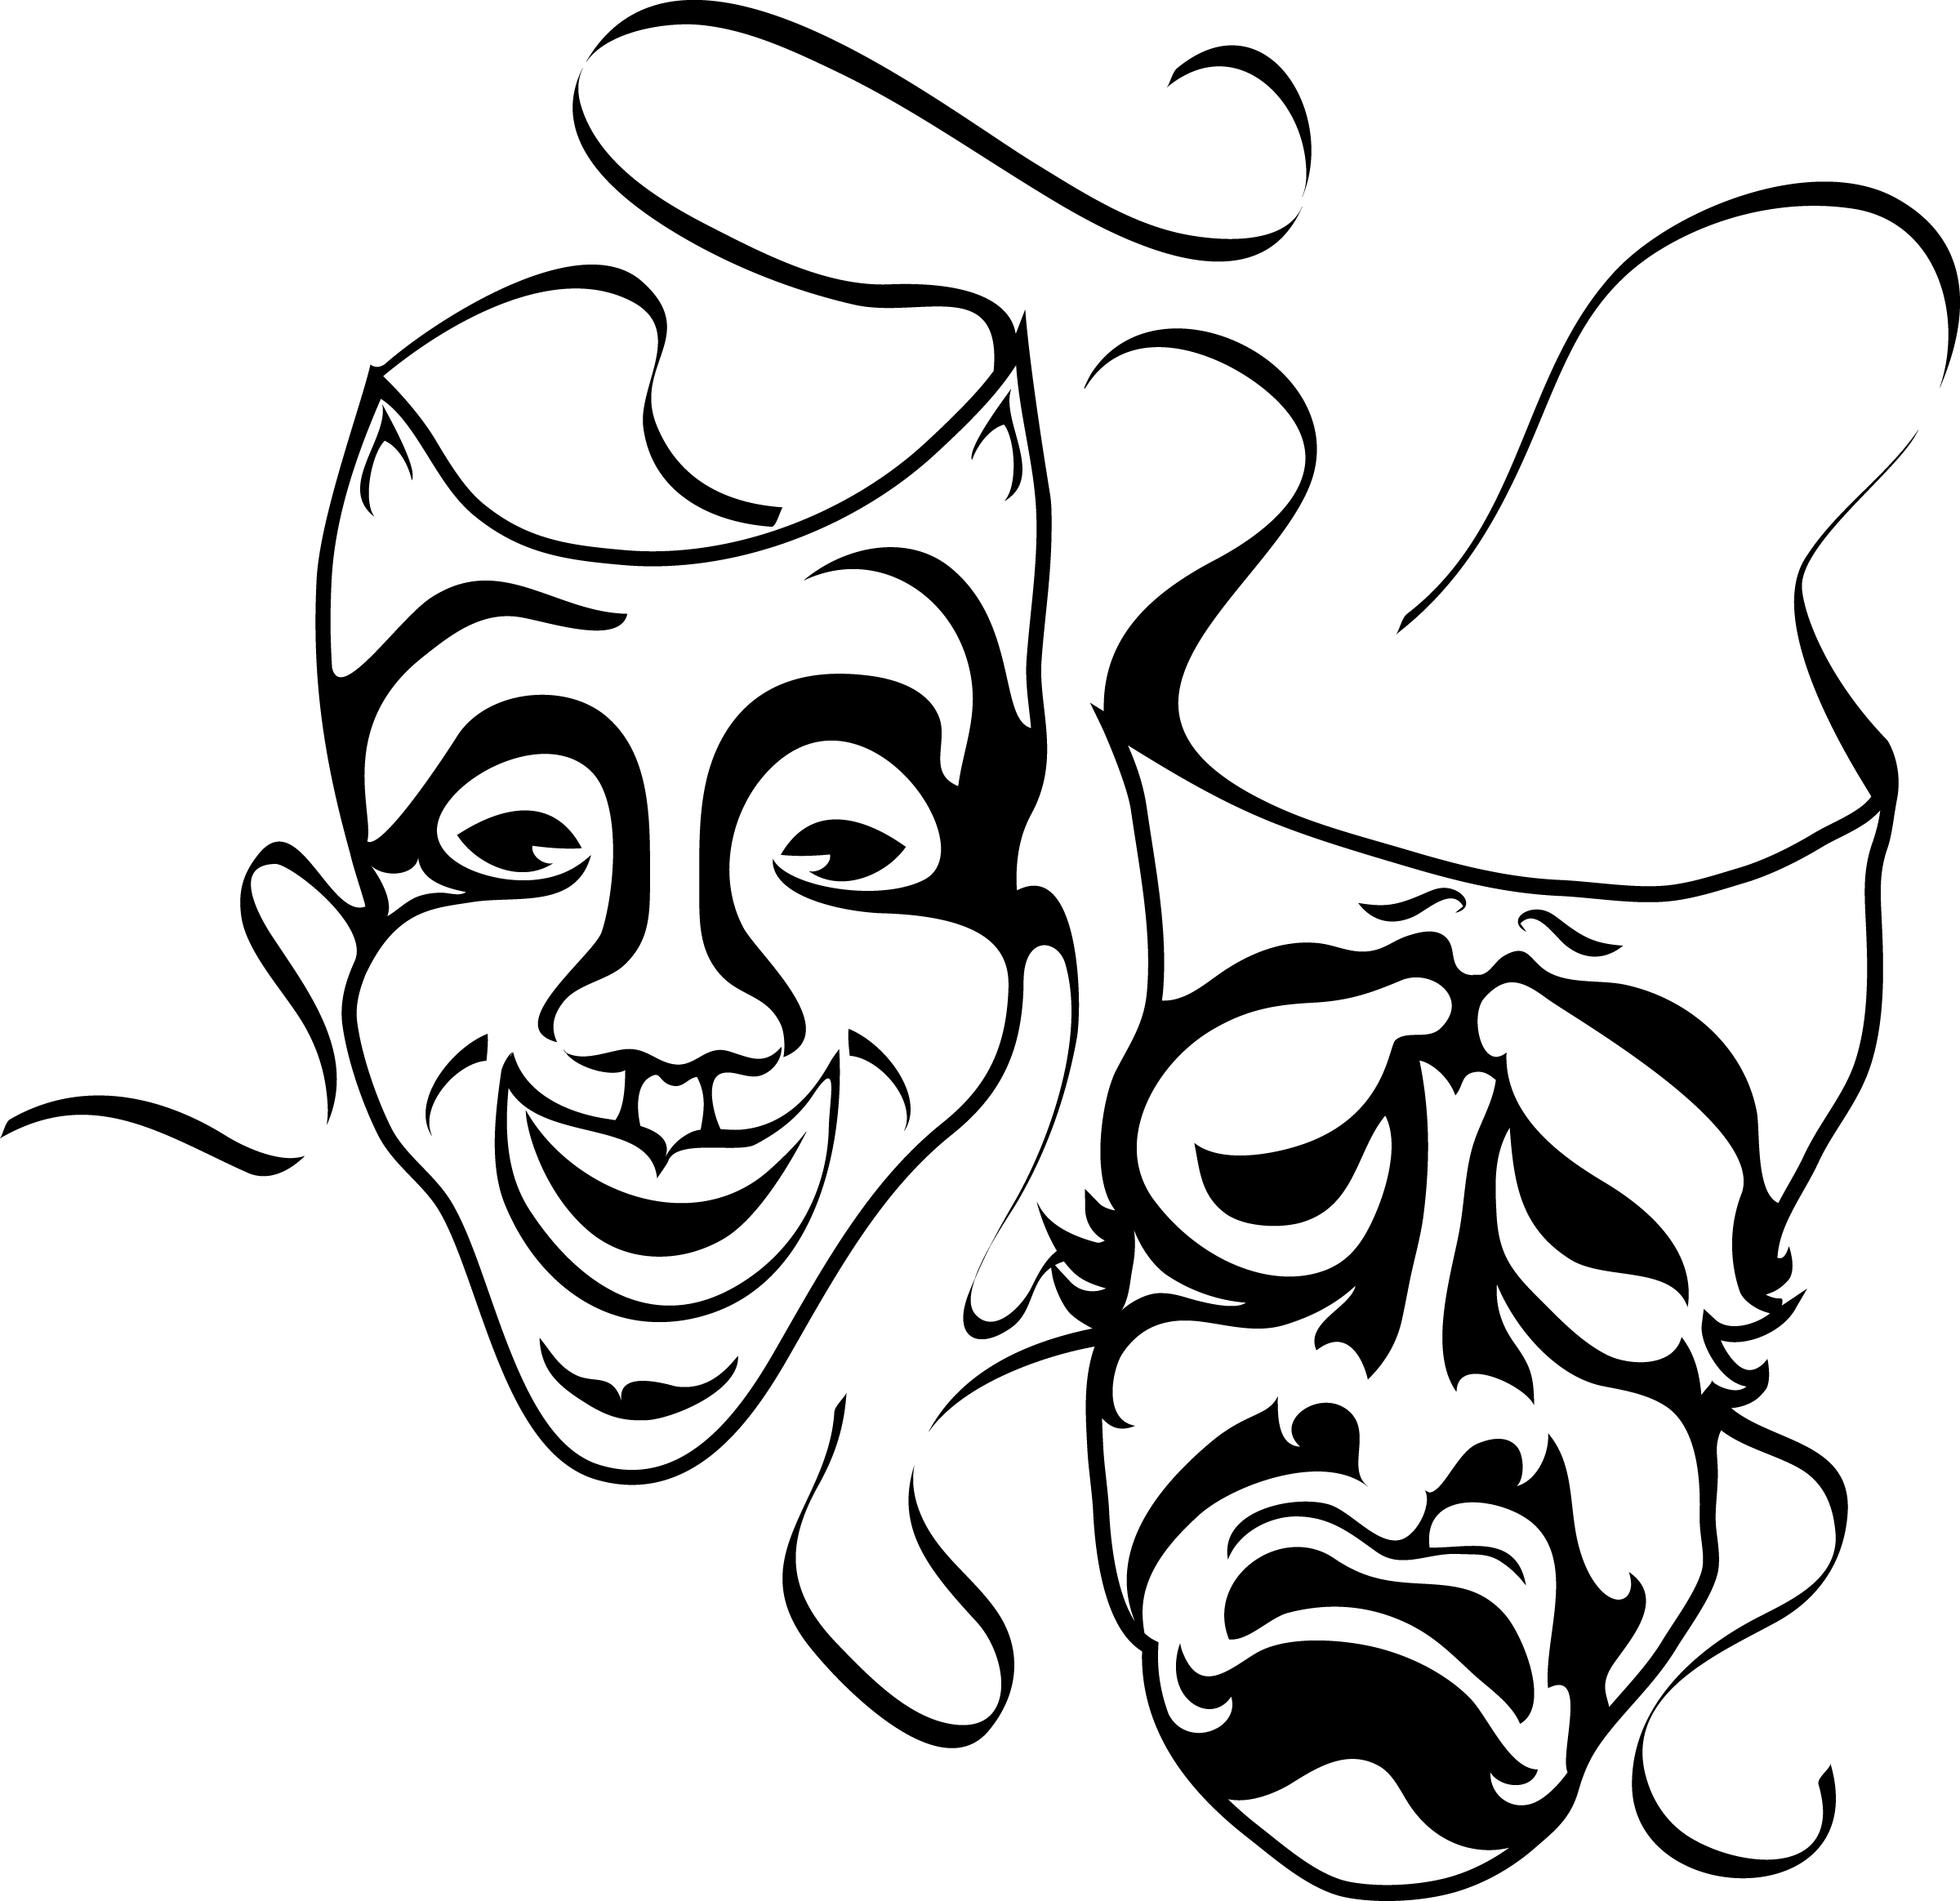 10 greek theatre masks free cliparts that you can download to you ...